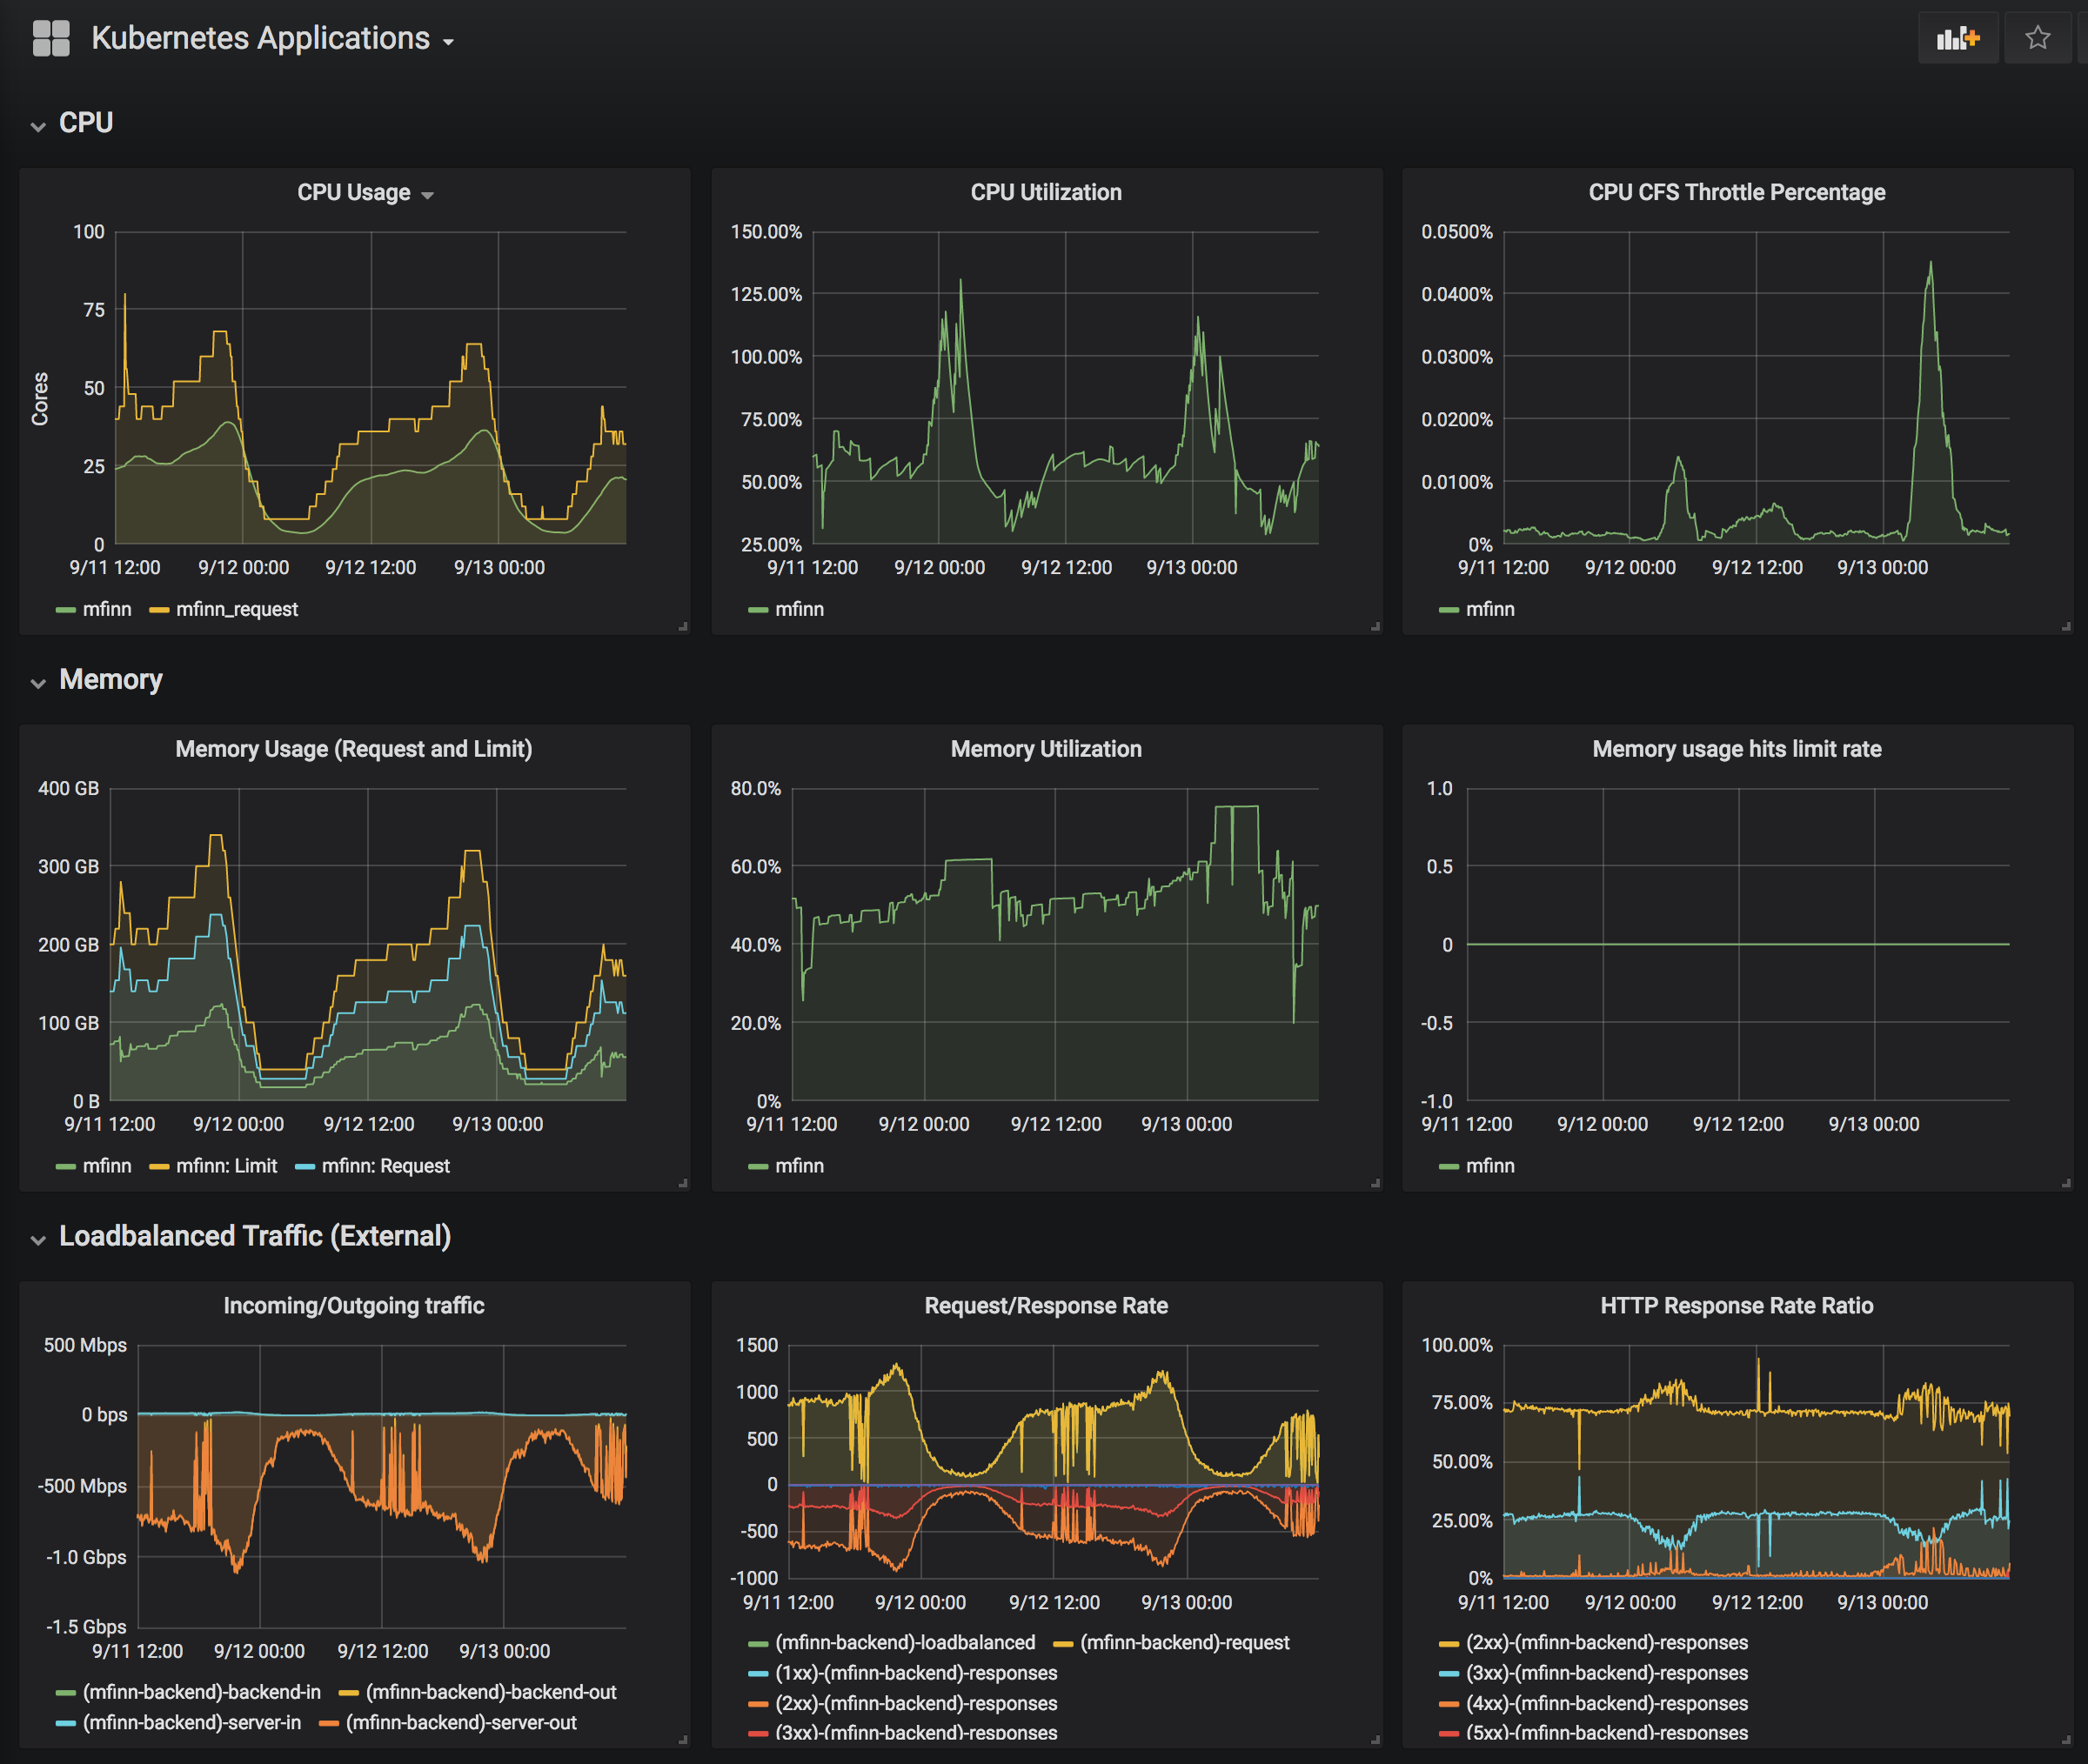 Grafana dashboard showing application metrics like CPU usage, memory usage, HTTP request per second, and network rx/tx.